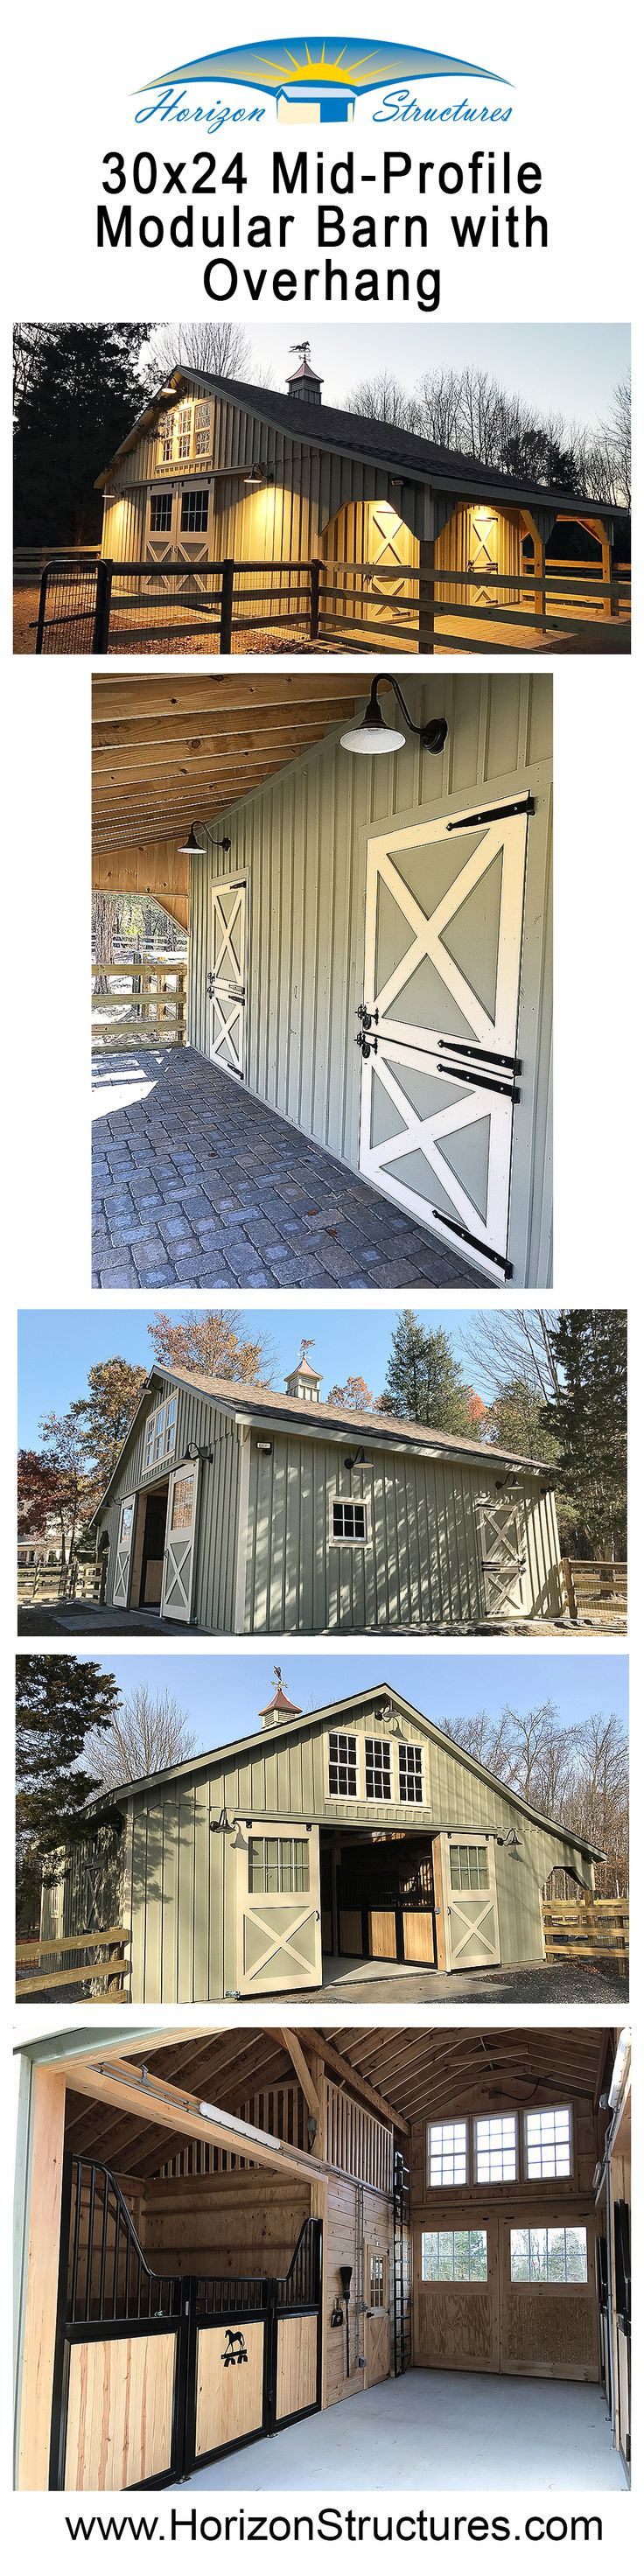 Another charming 4-stall, customized modular horse barn by Horizon Structures